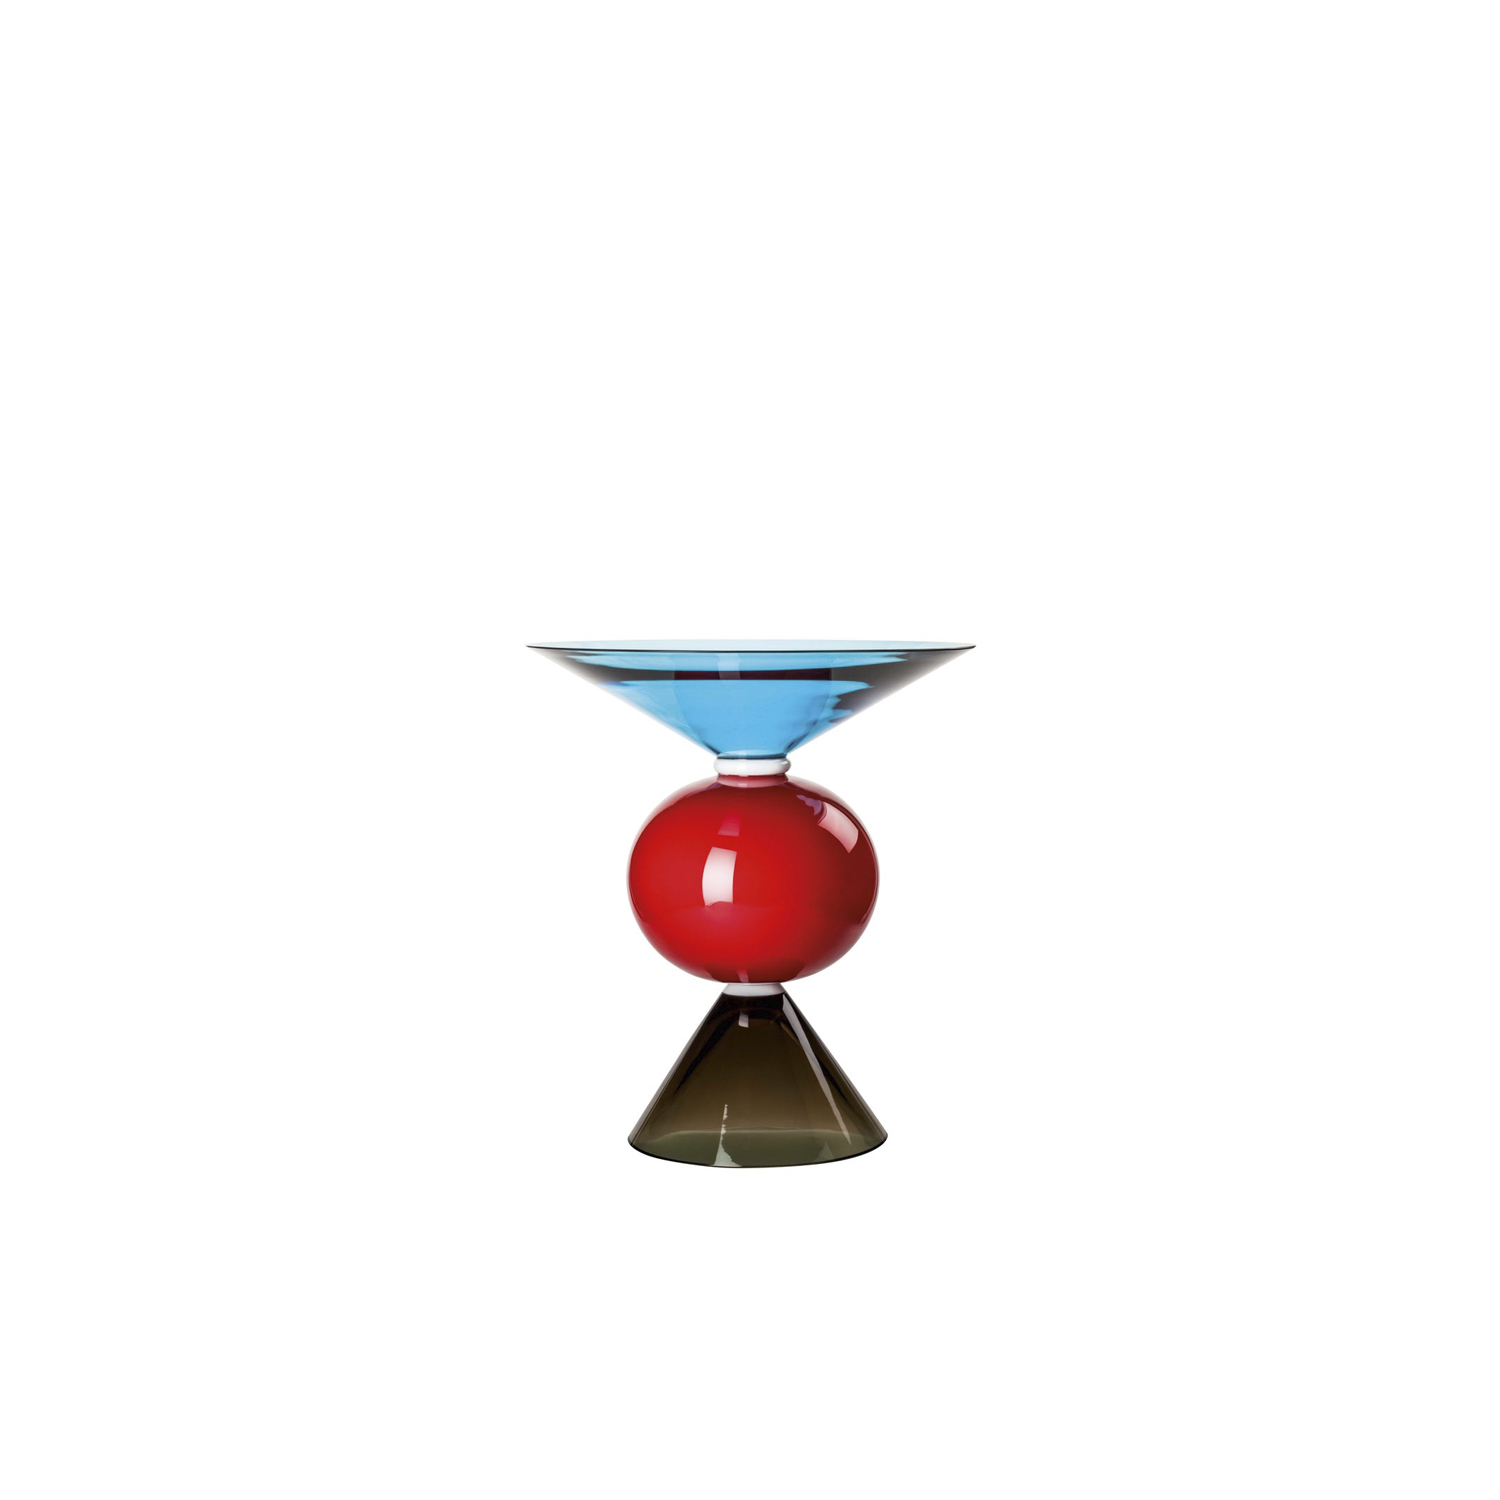 "Yamen and Oman Vase - Bold and elegant, this vase as designed by Ettore Sottsass in 1984. It comprises three separate pieces of mouth-blown glass: two flared, funnel-shaped pieces in red and blue flanking a central black sphere. This piece is crafted using the opaline technique, in which milky-white glass (""lattimo"") is superimposed with layers of transparent glass. 